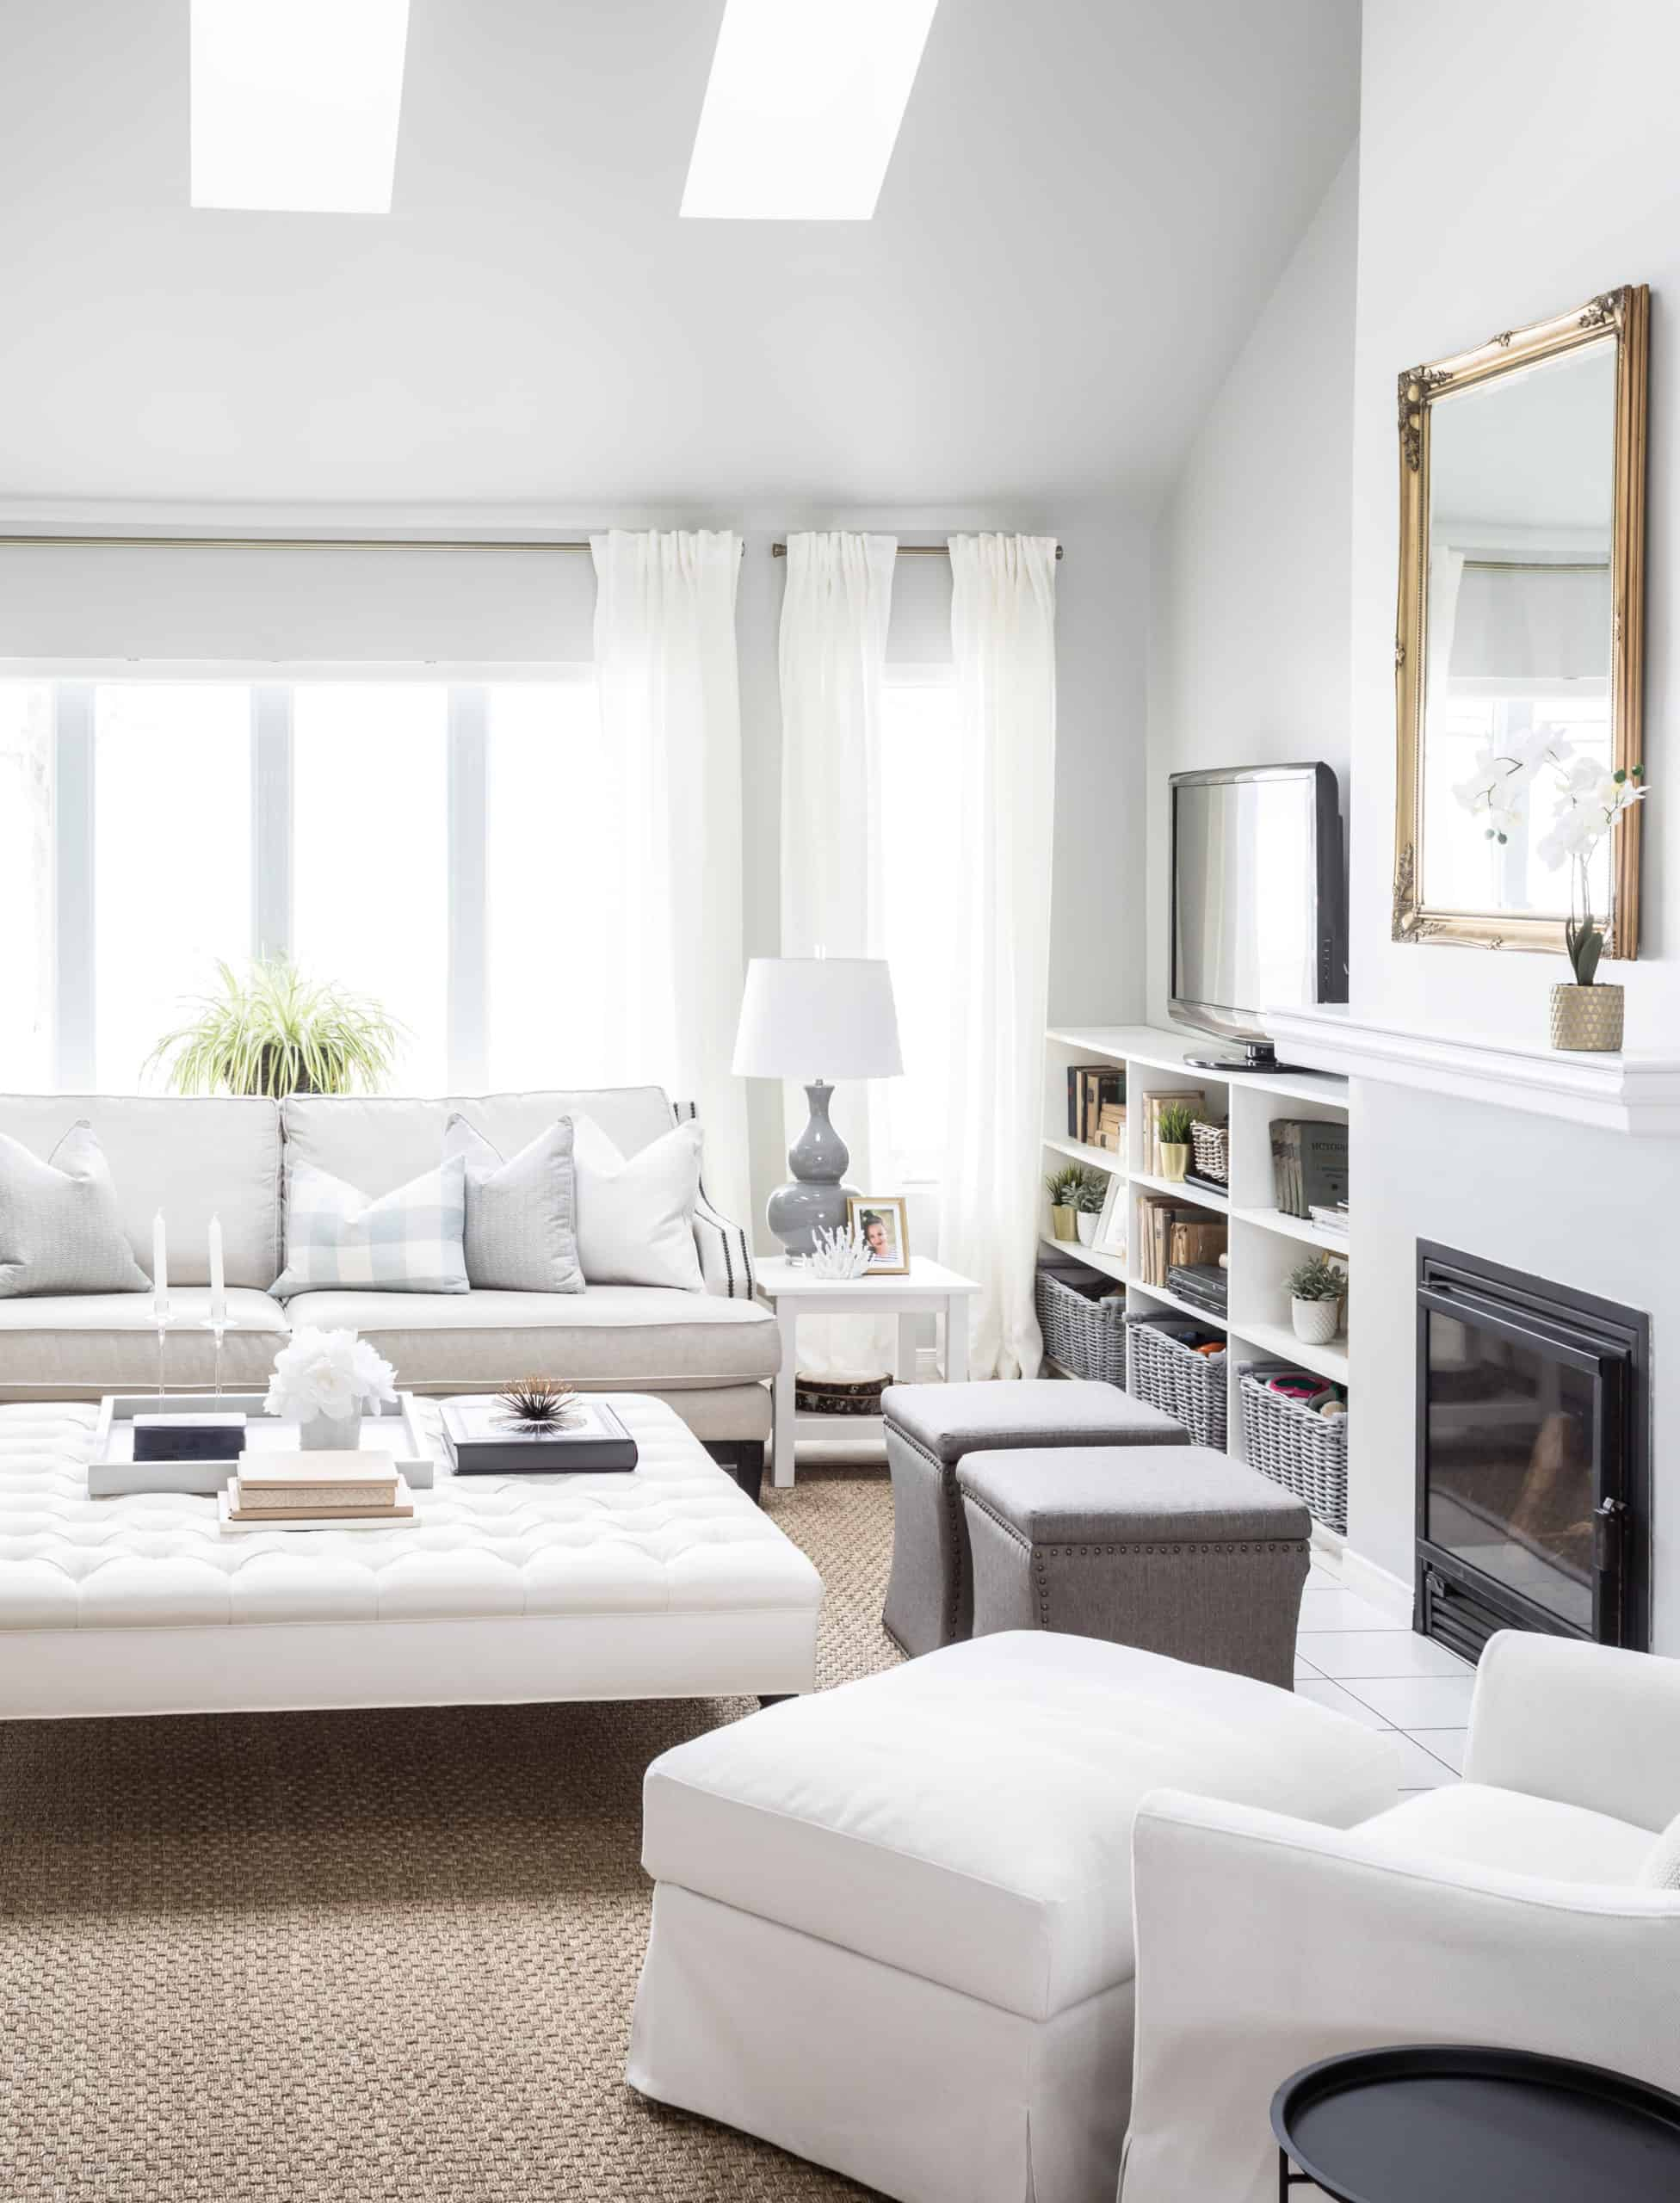 Large, modern living room with bright white furniture in it